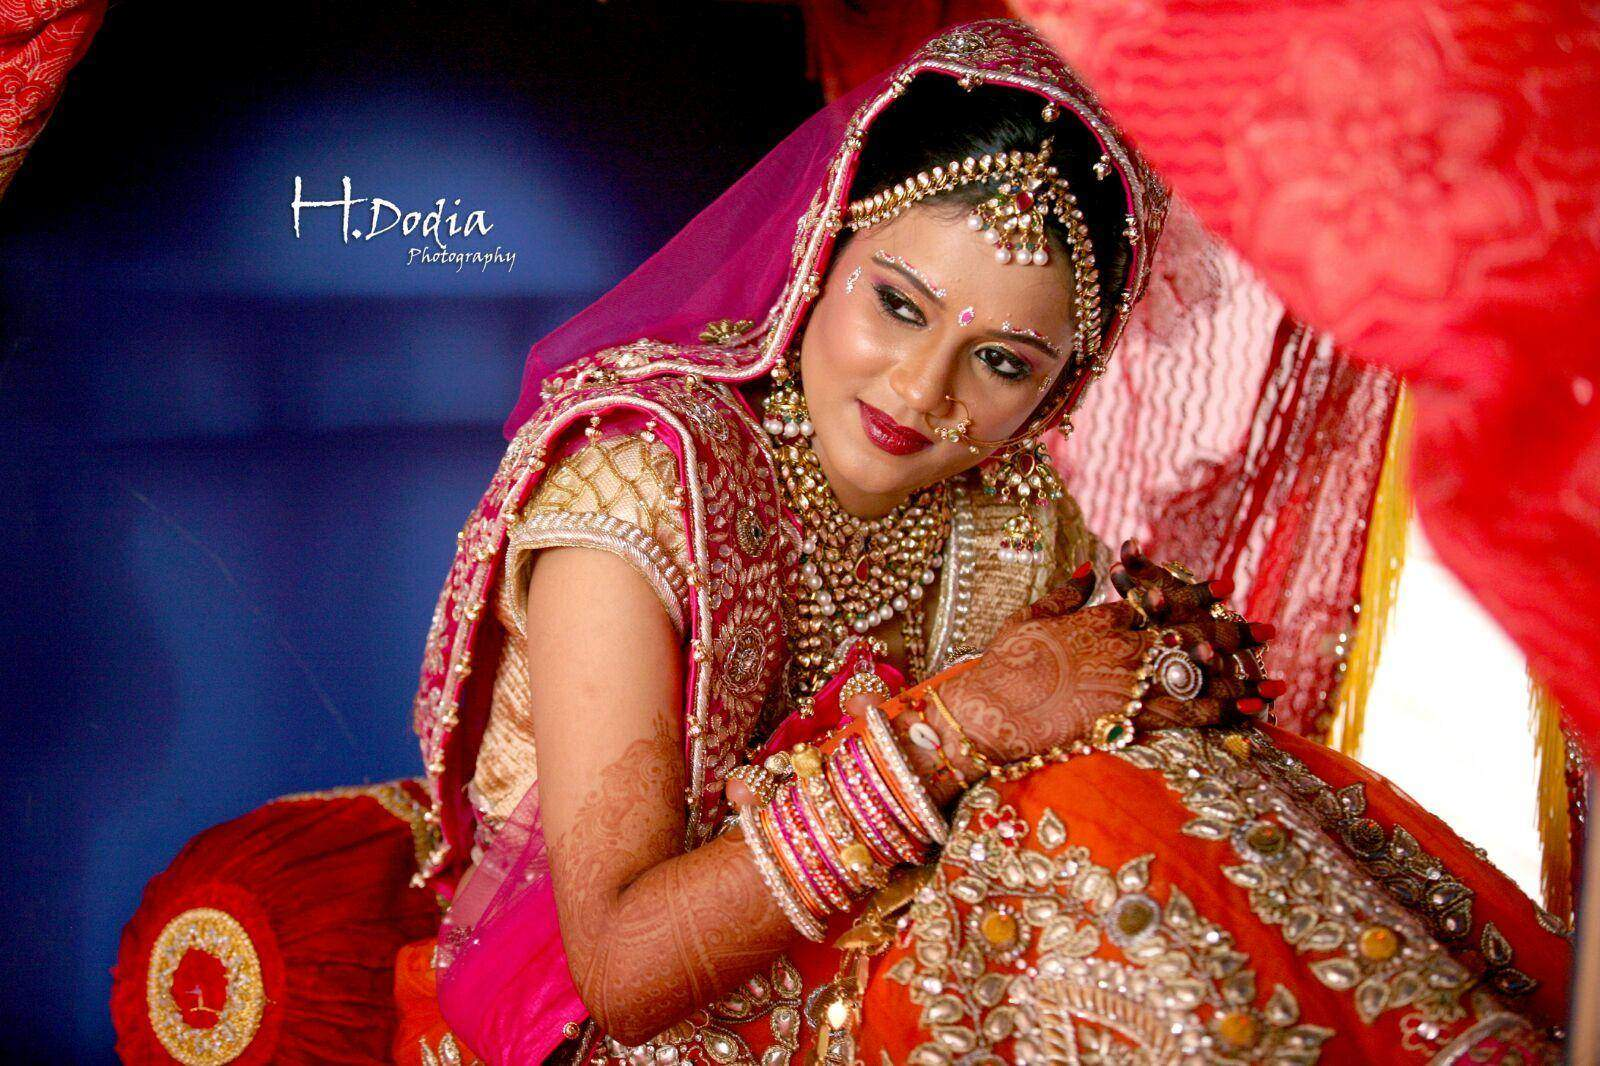 H D Images Pictures Bandra West Mumbai Footage Photographs - Wedding Photography Full Hd , HD Wallpaper & Backgrounds